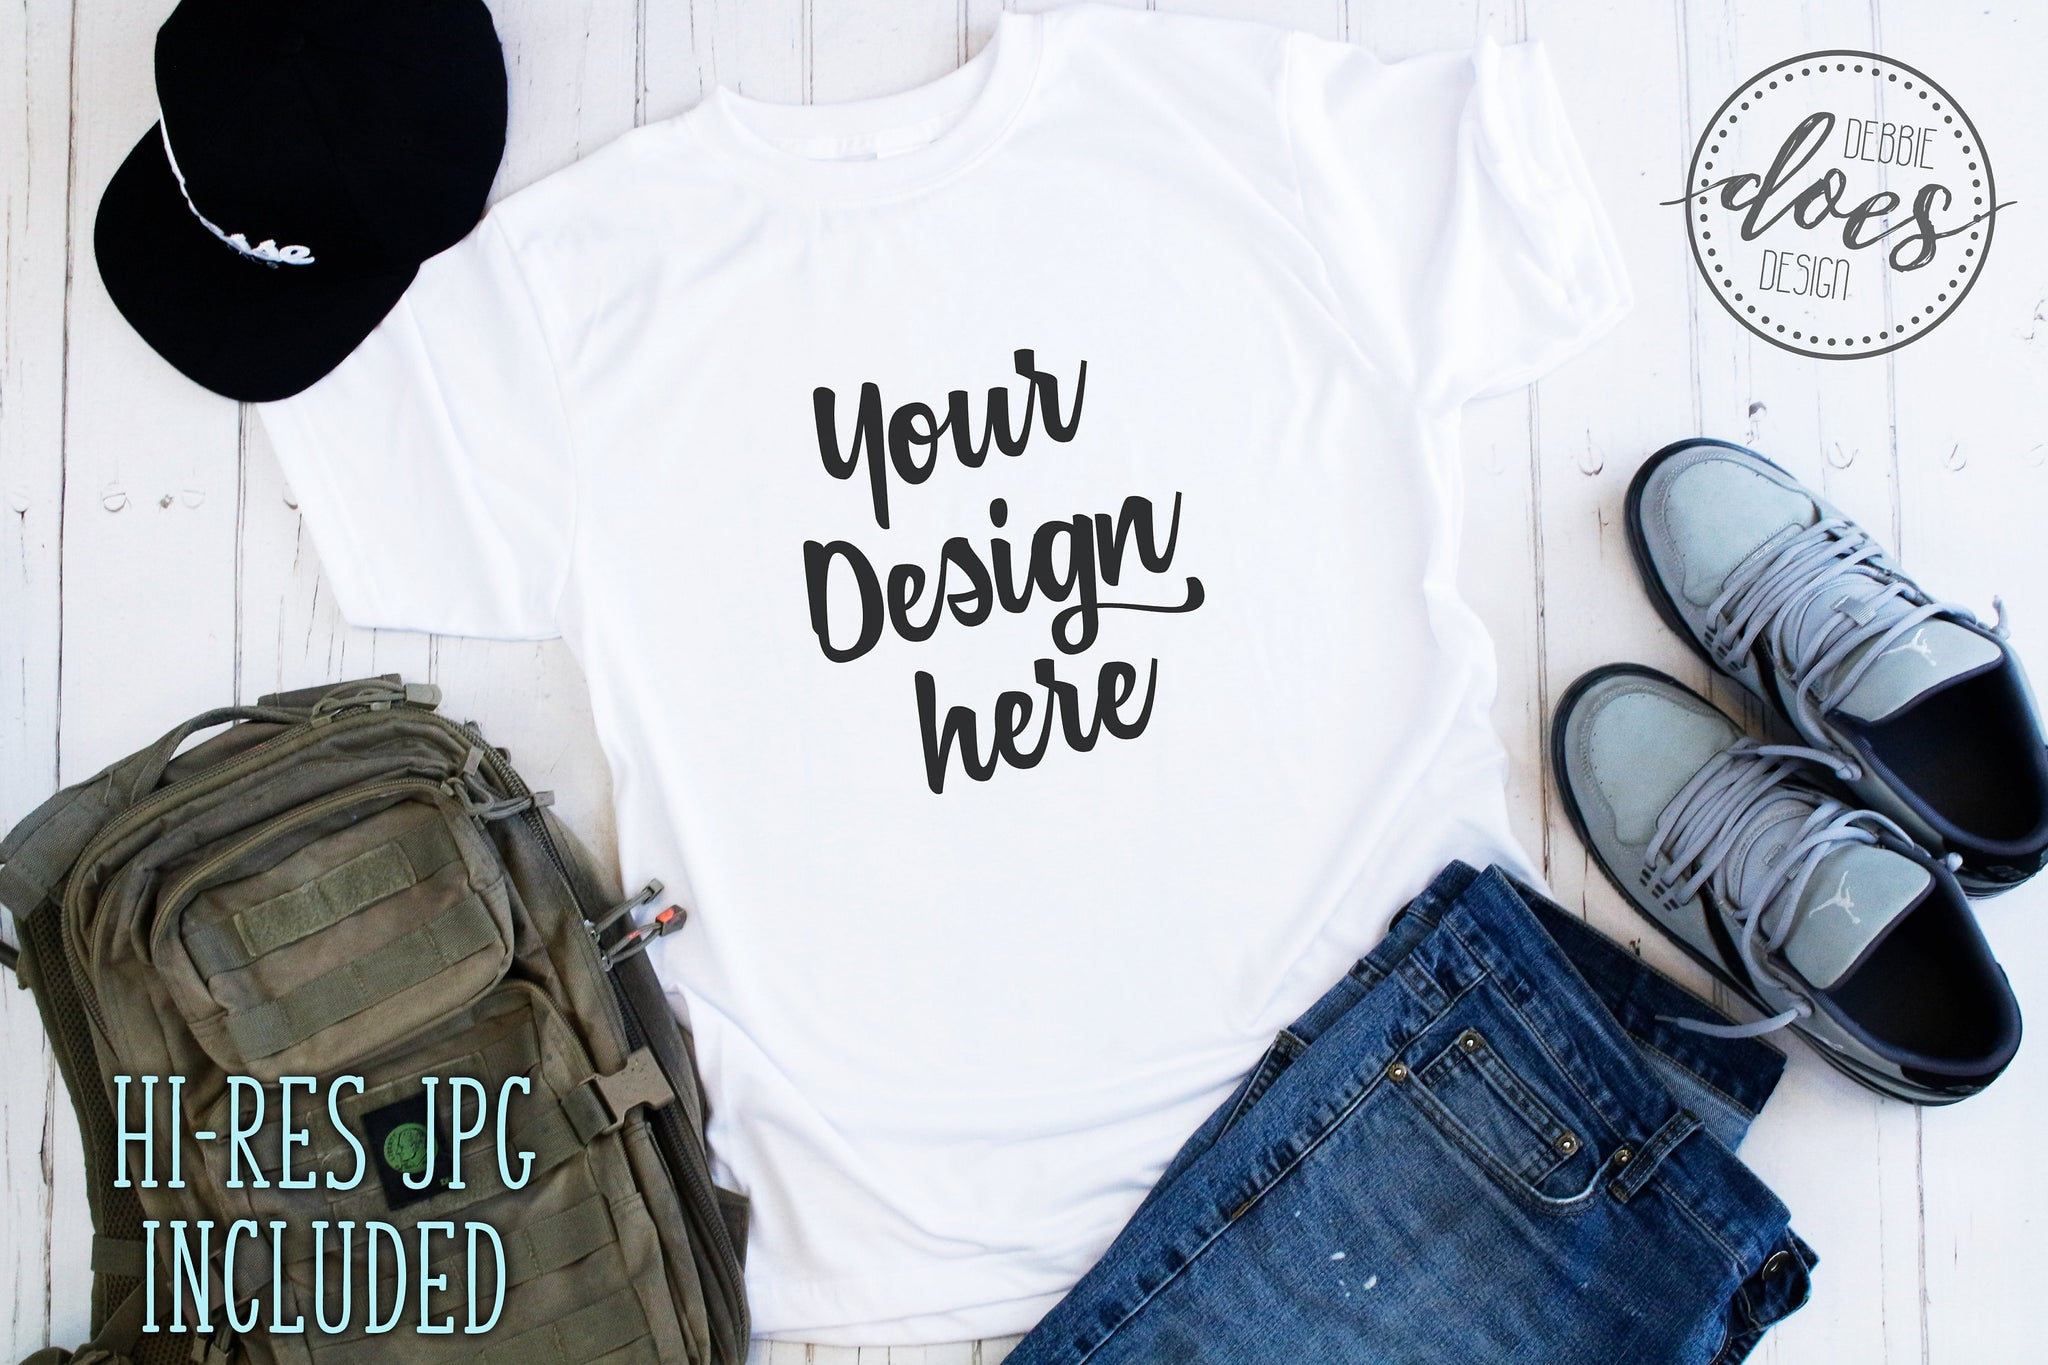 Men's Vapor Tee Shirt Mockup | White Tee Mock-Up | Blank Mock Up Photo Download